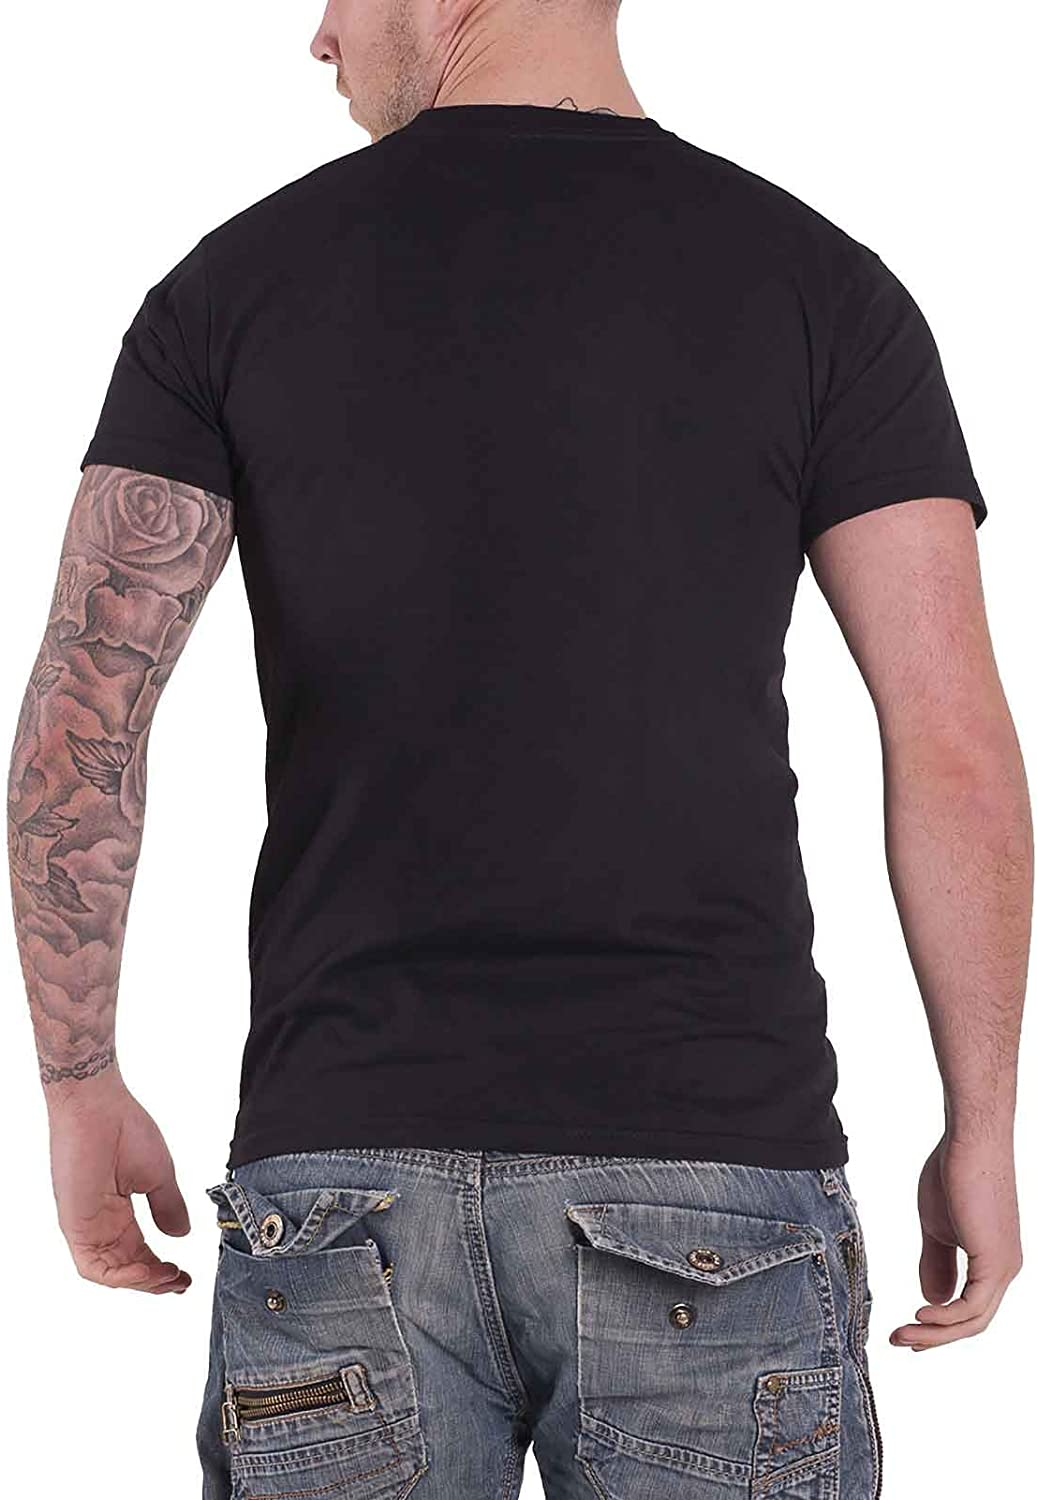 Fluido Rosa T Shirt Vintage Distressed Division Bell Logo Ufficiale Uomo nuovo